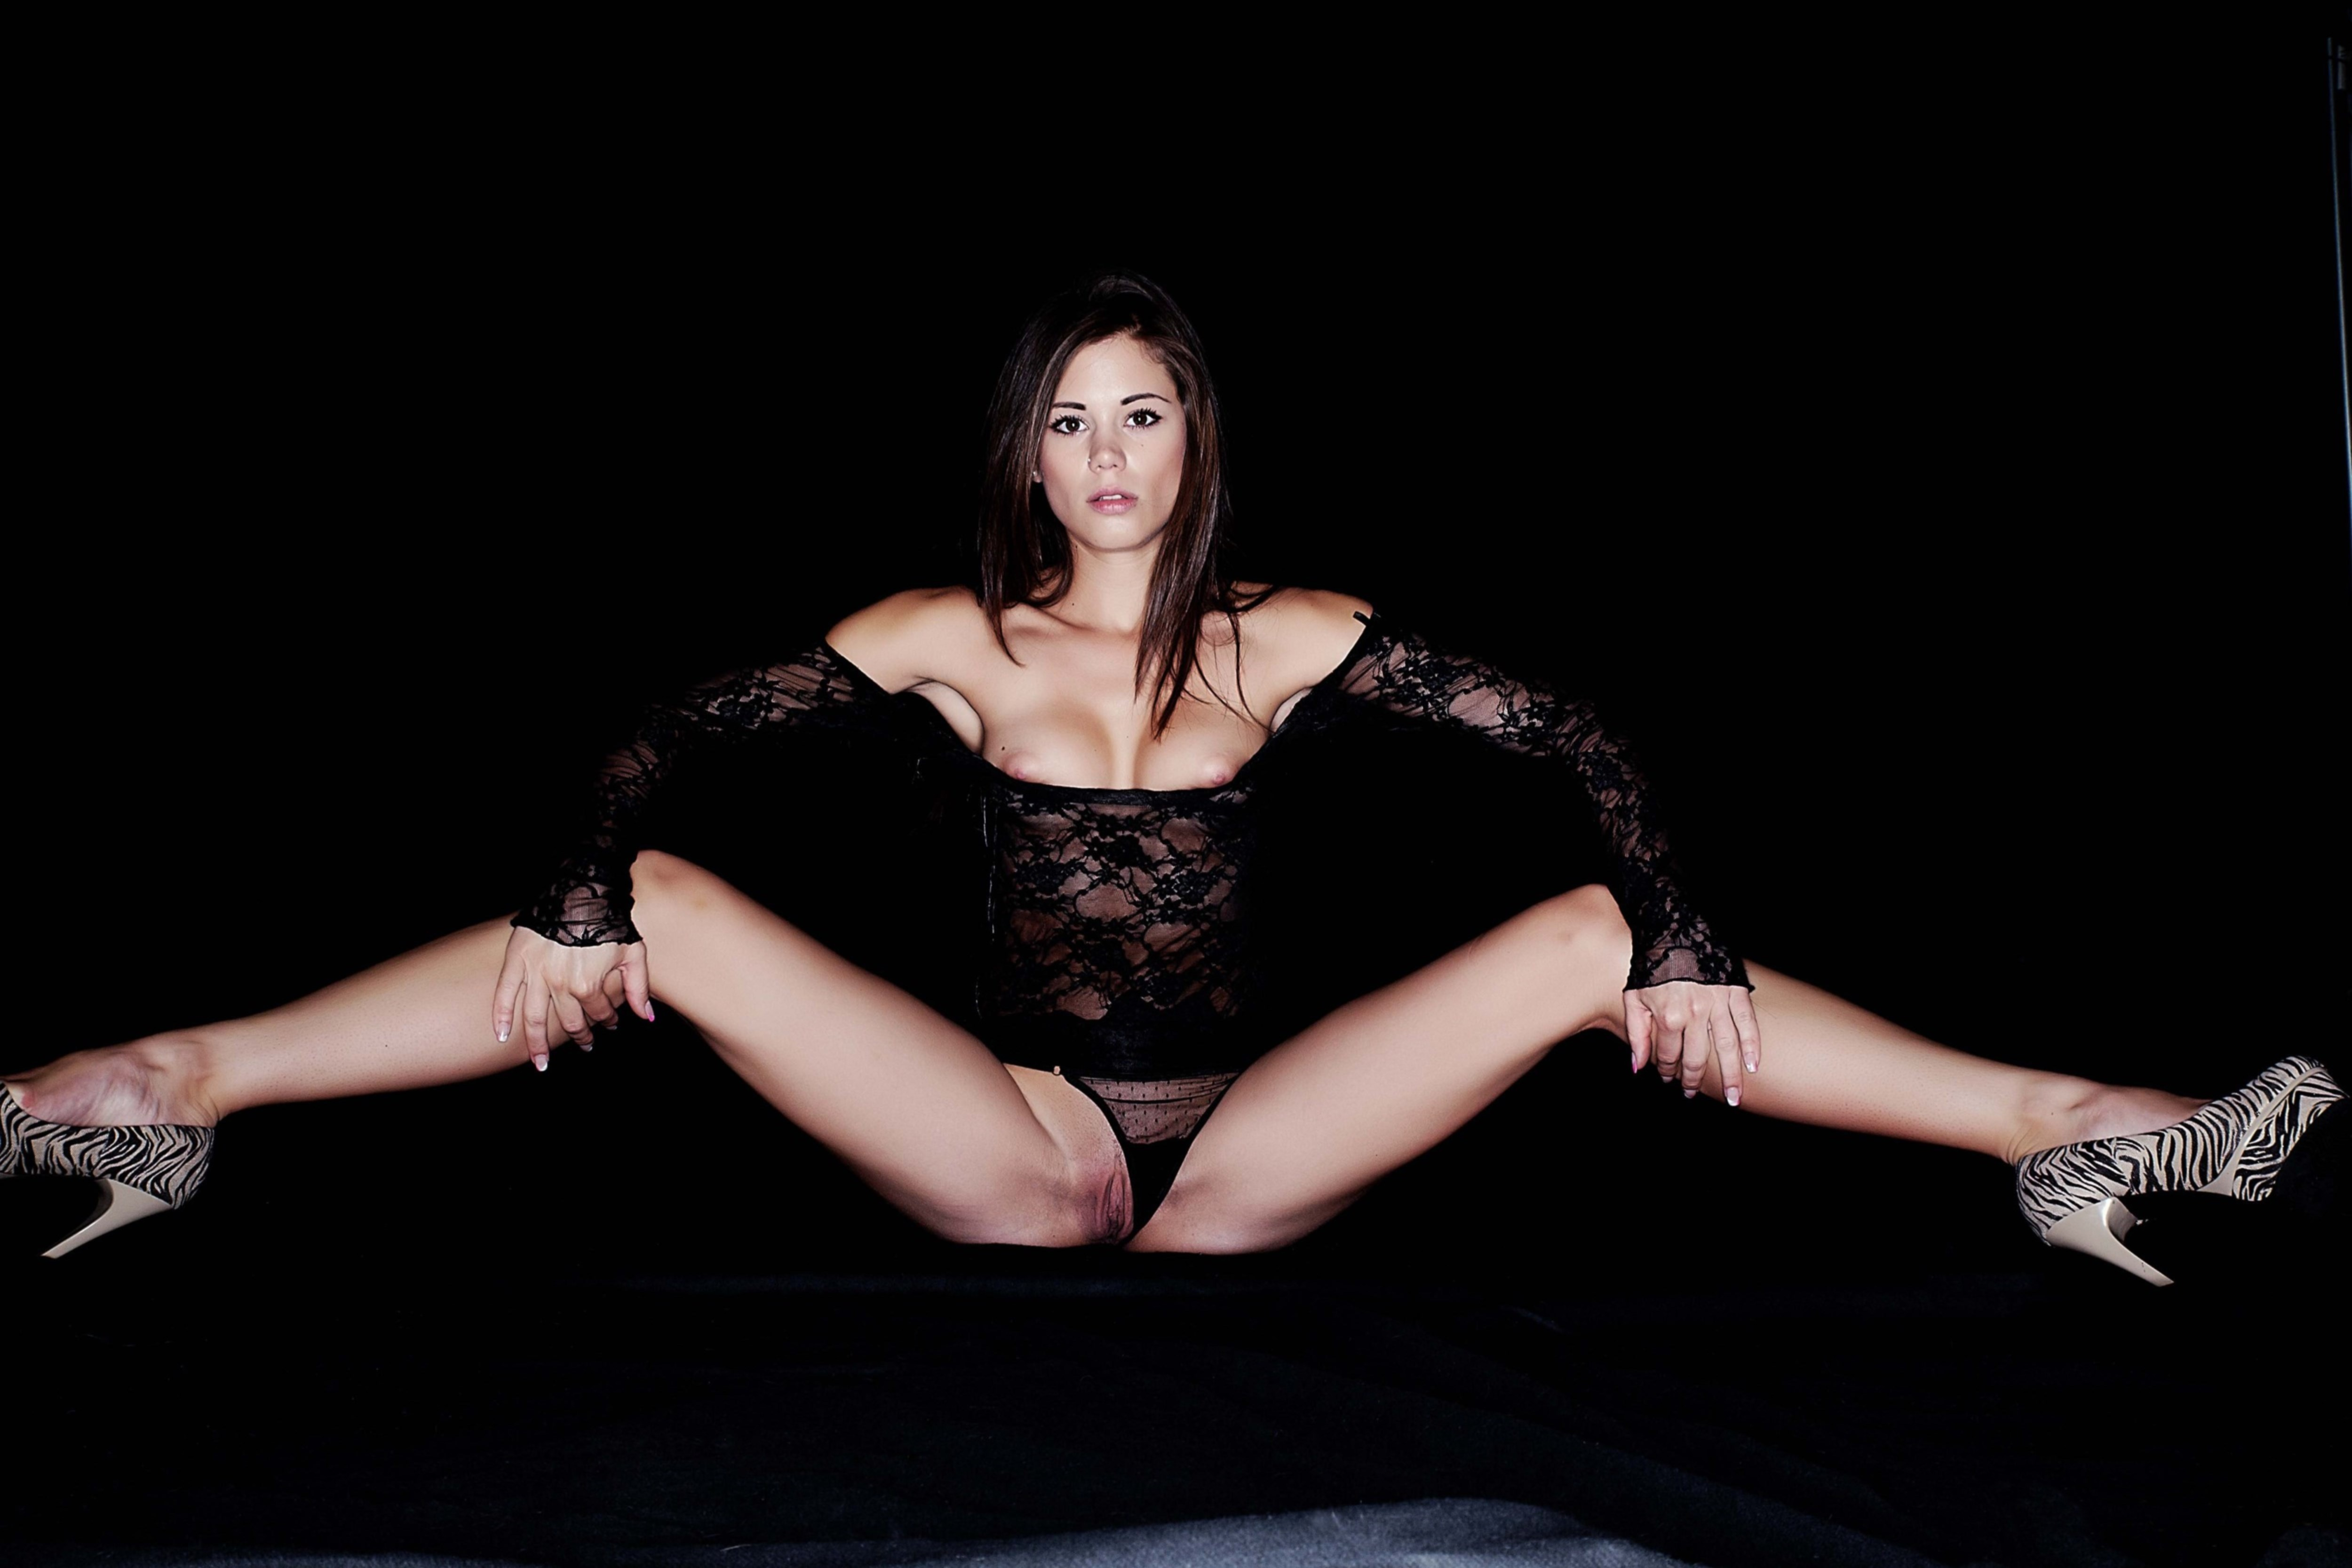 Wallpaper caprice, nude, front, black, open legs pussy ...